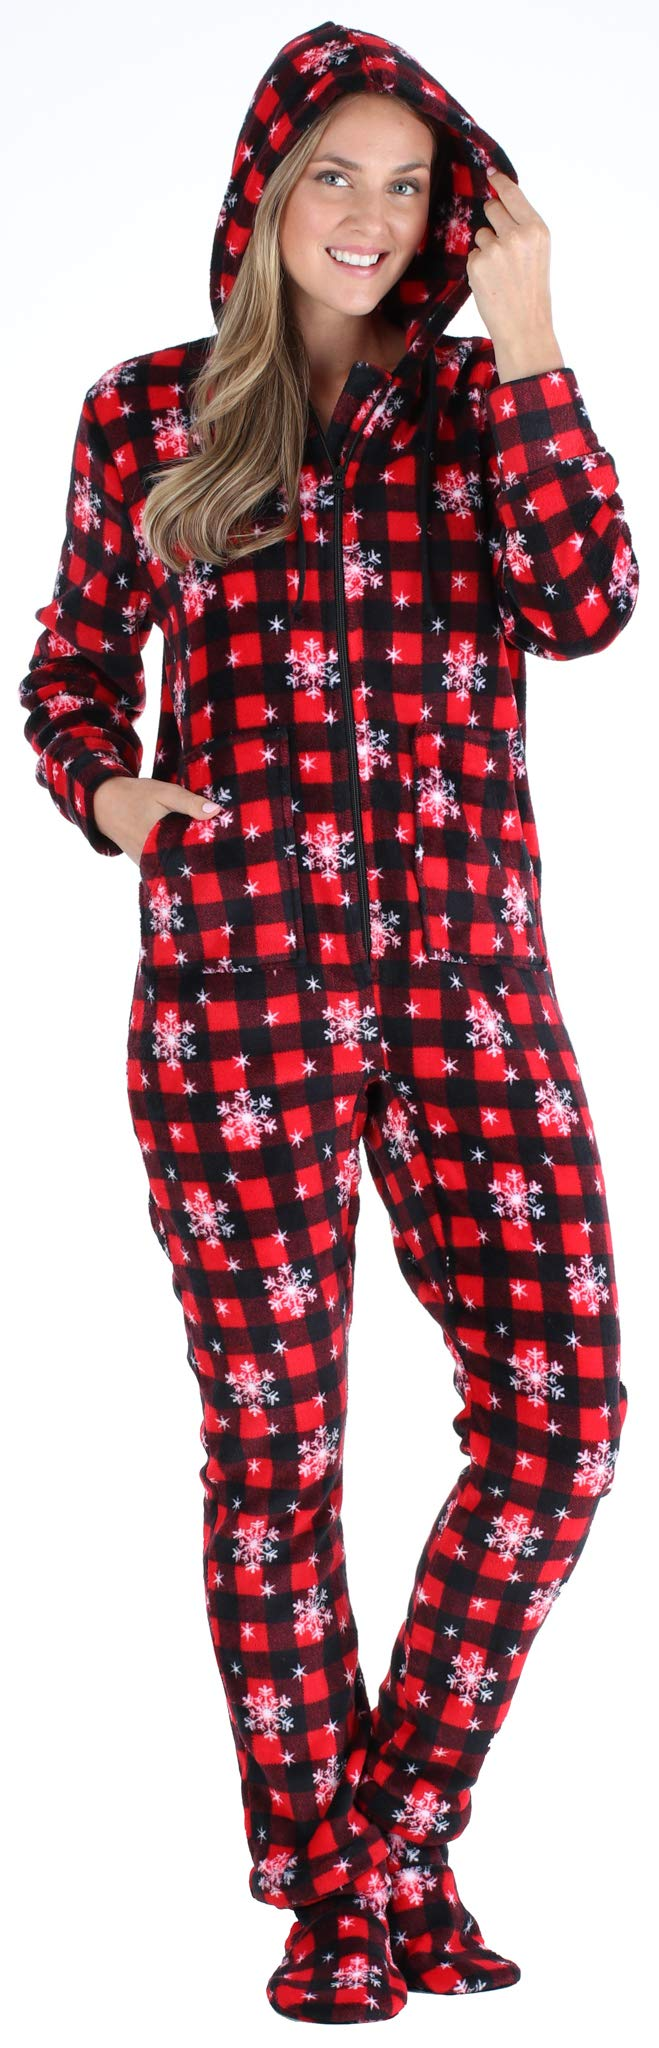 SleepytimePJs Women's Fleece Hooded Footed Onesie Pajama